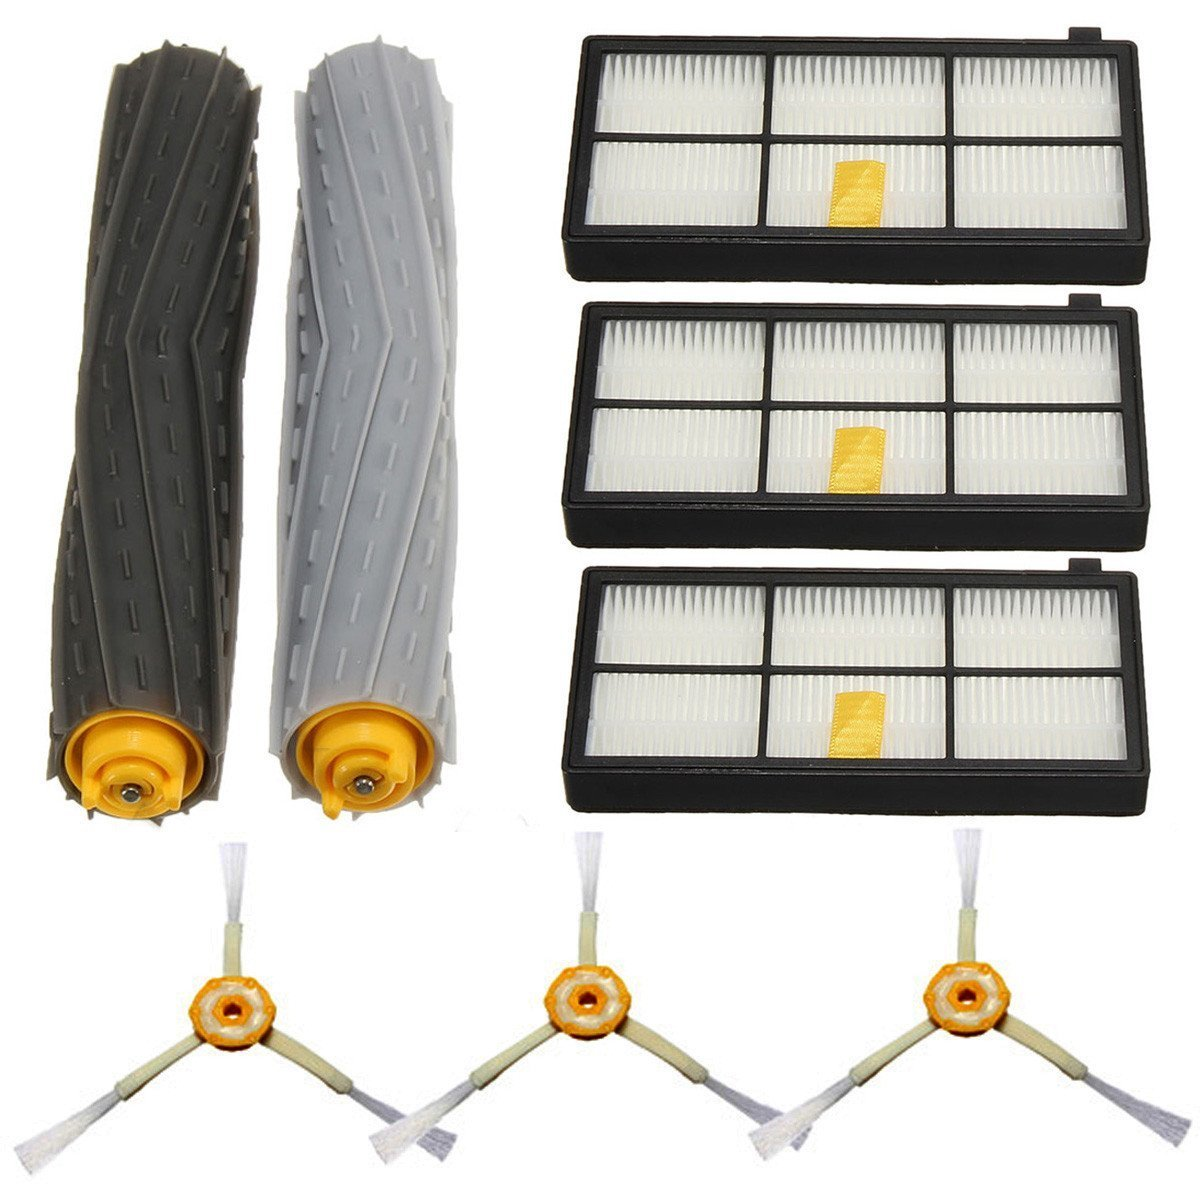 8Pcs Filters Brush Pack Replacement Kit For iRobot Roomba 800 Series 800 870 880 / . 8Pcs Filters Brush Pack Replacement Kit For iRobot Roomba 800 Series 800 870 880 . . Keep your iRobot Room